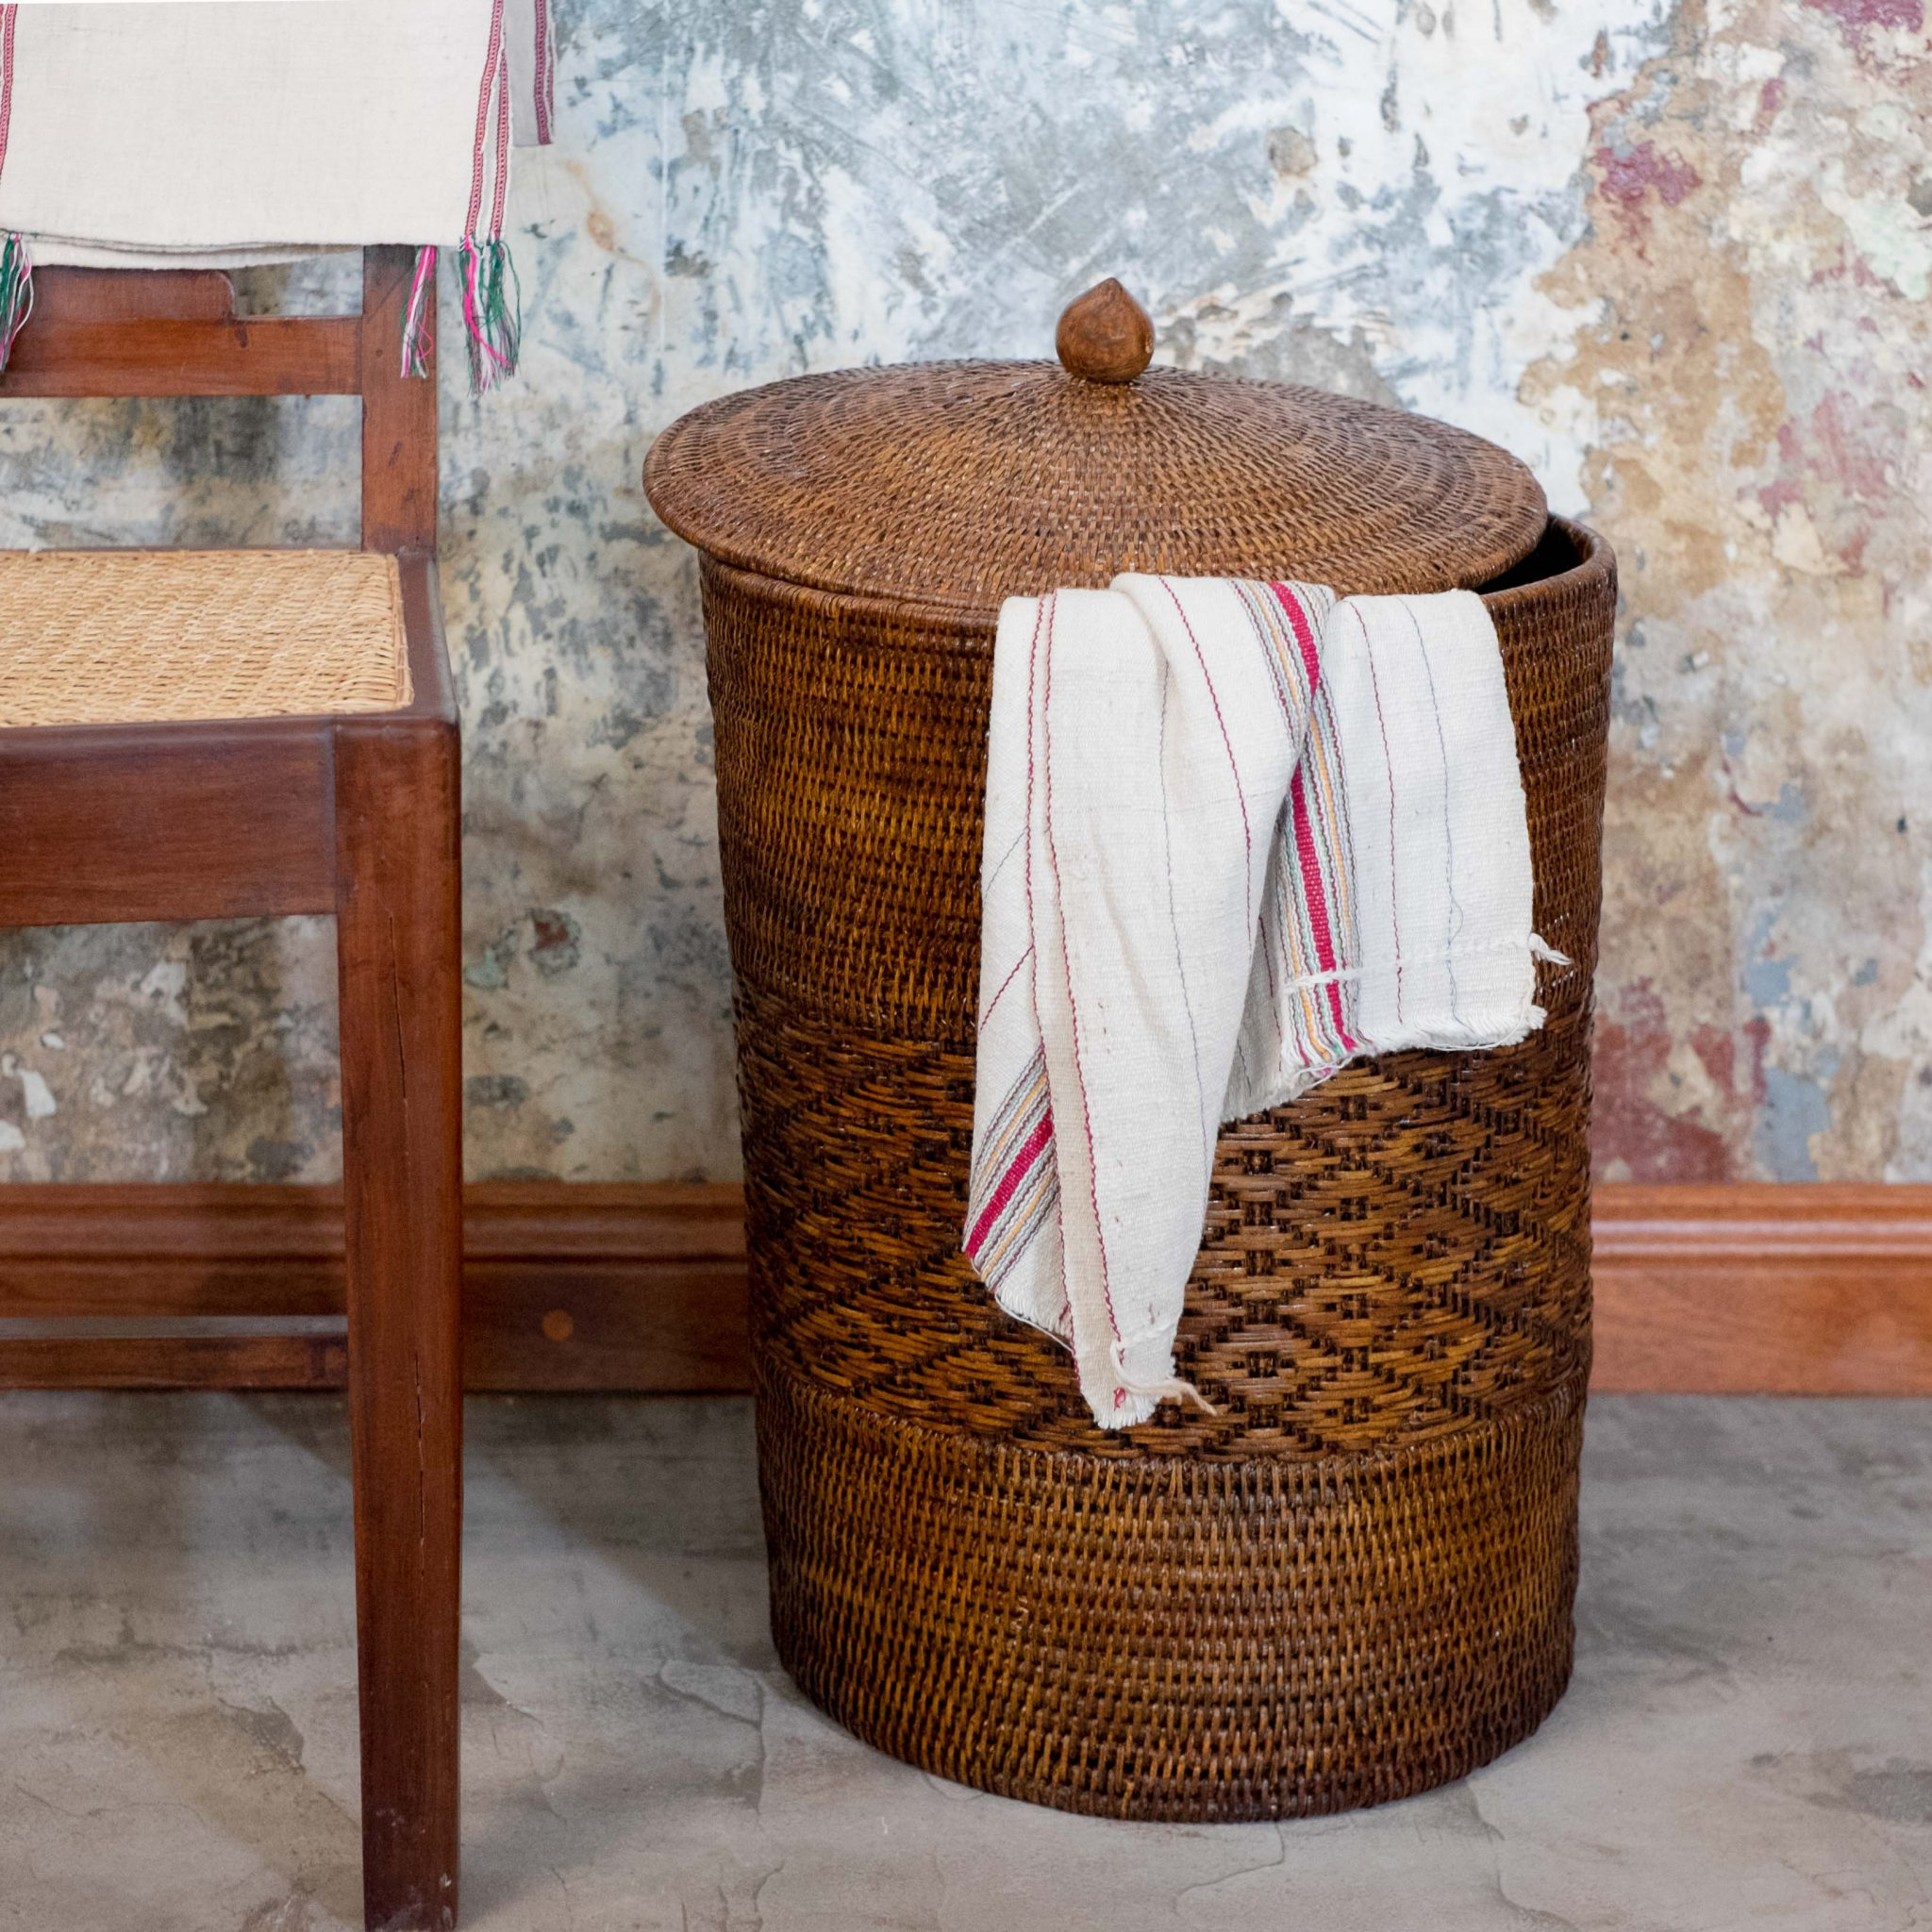 Woven laundry basket by Kalinko